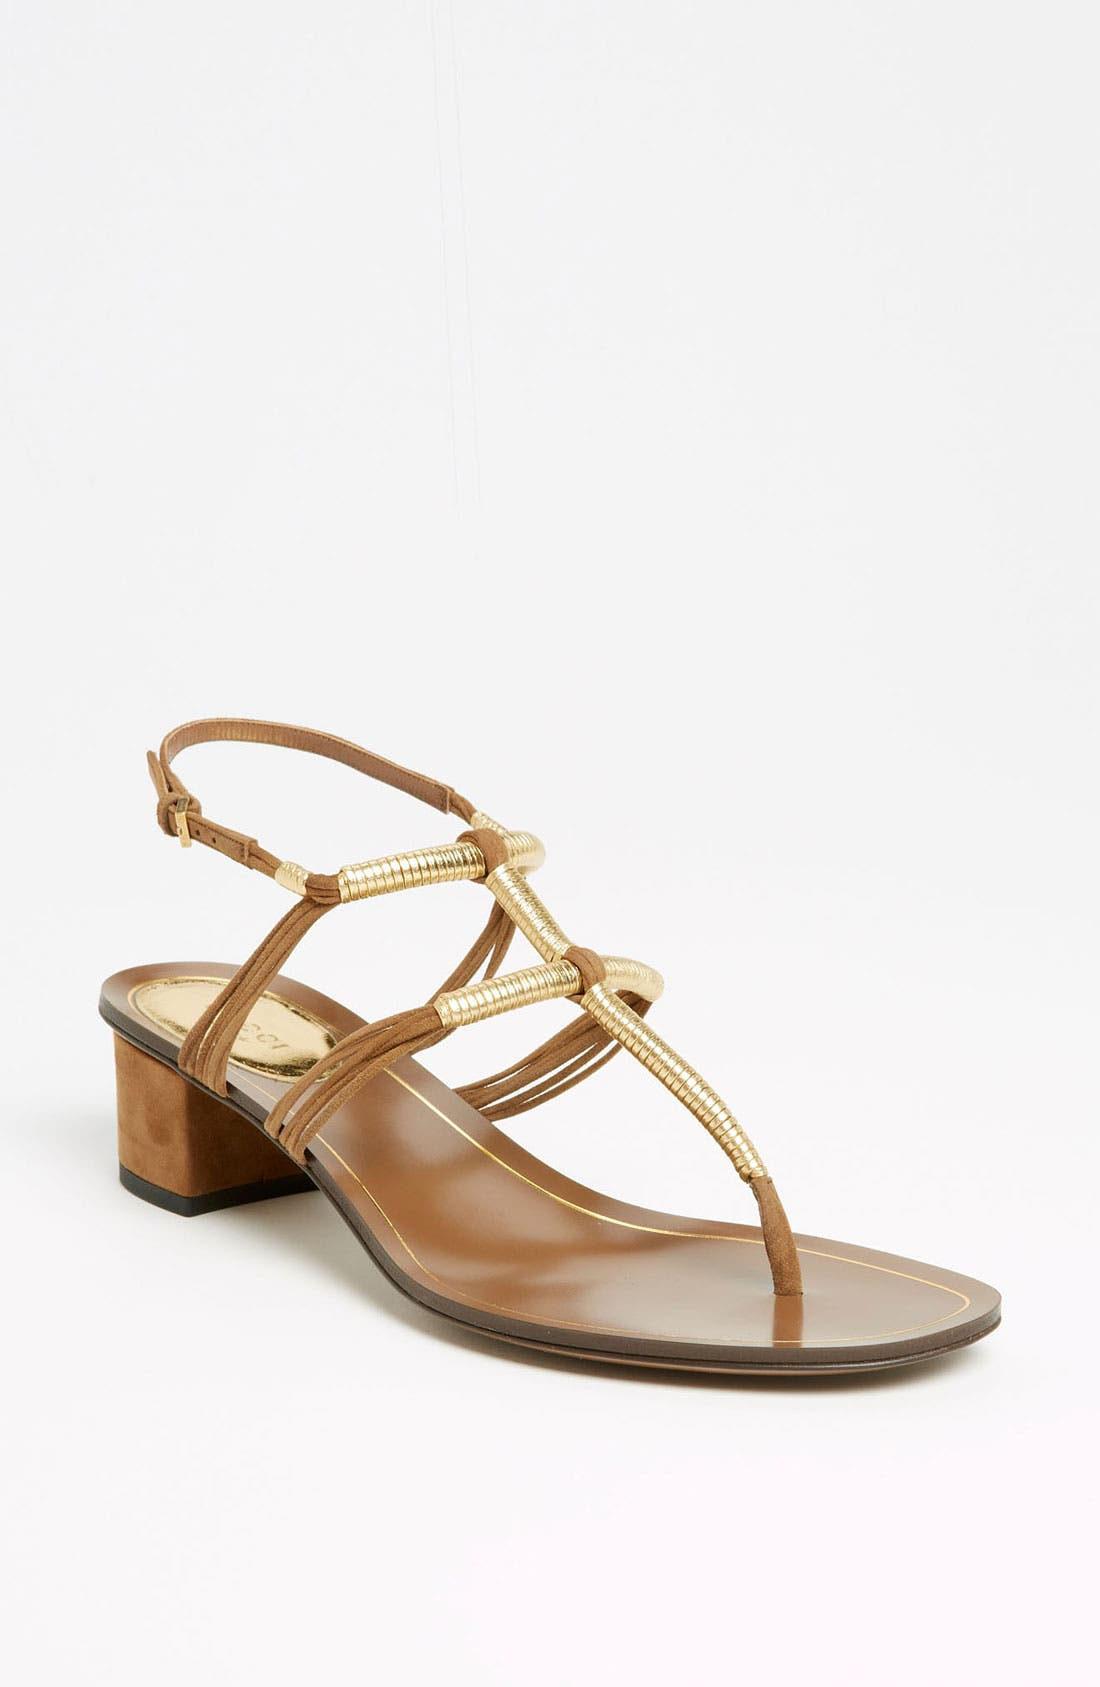 Alternate Image 1 Selected - Gucci 'Anita' Thong Sandal